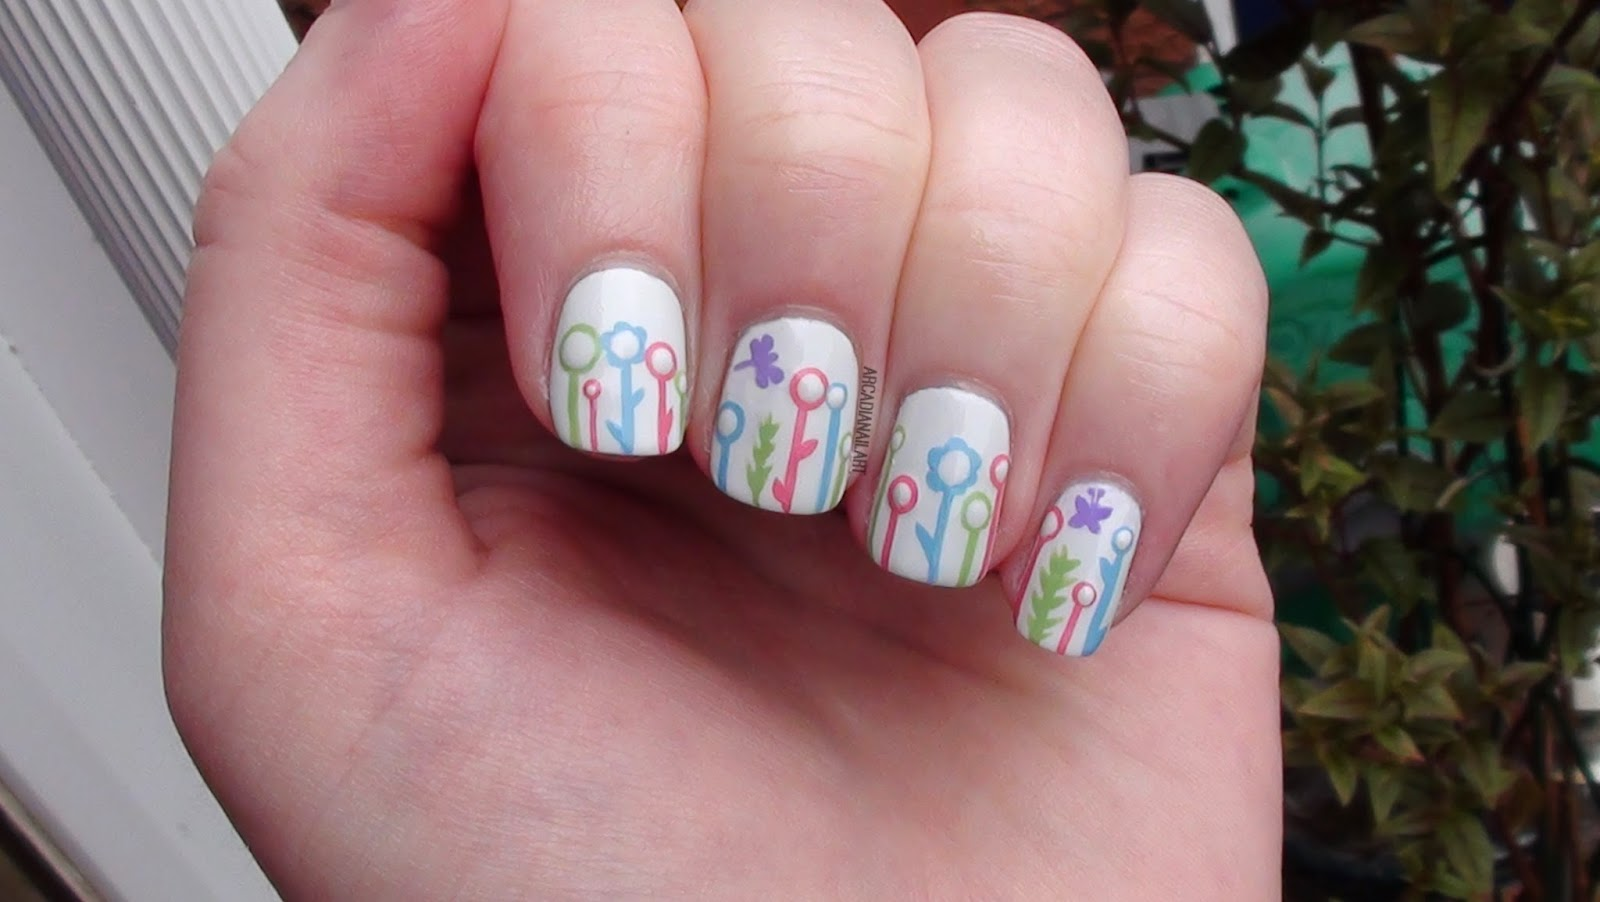 ArcadiaNailArt: Contemporary Flowers in a Garden Nail Art